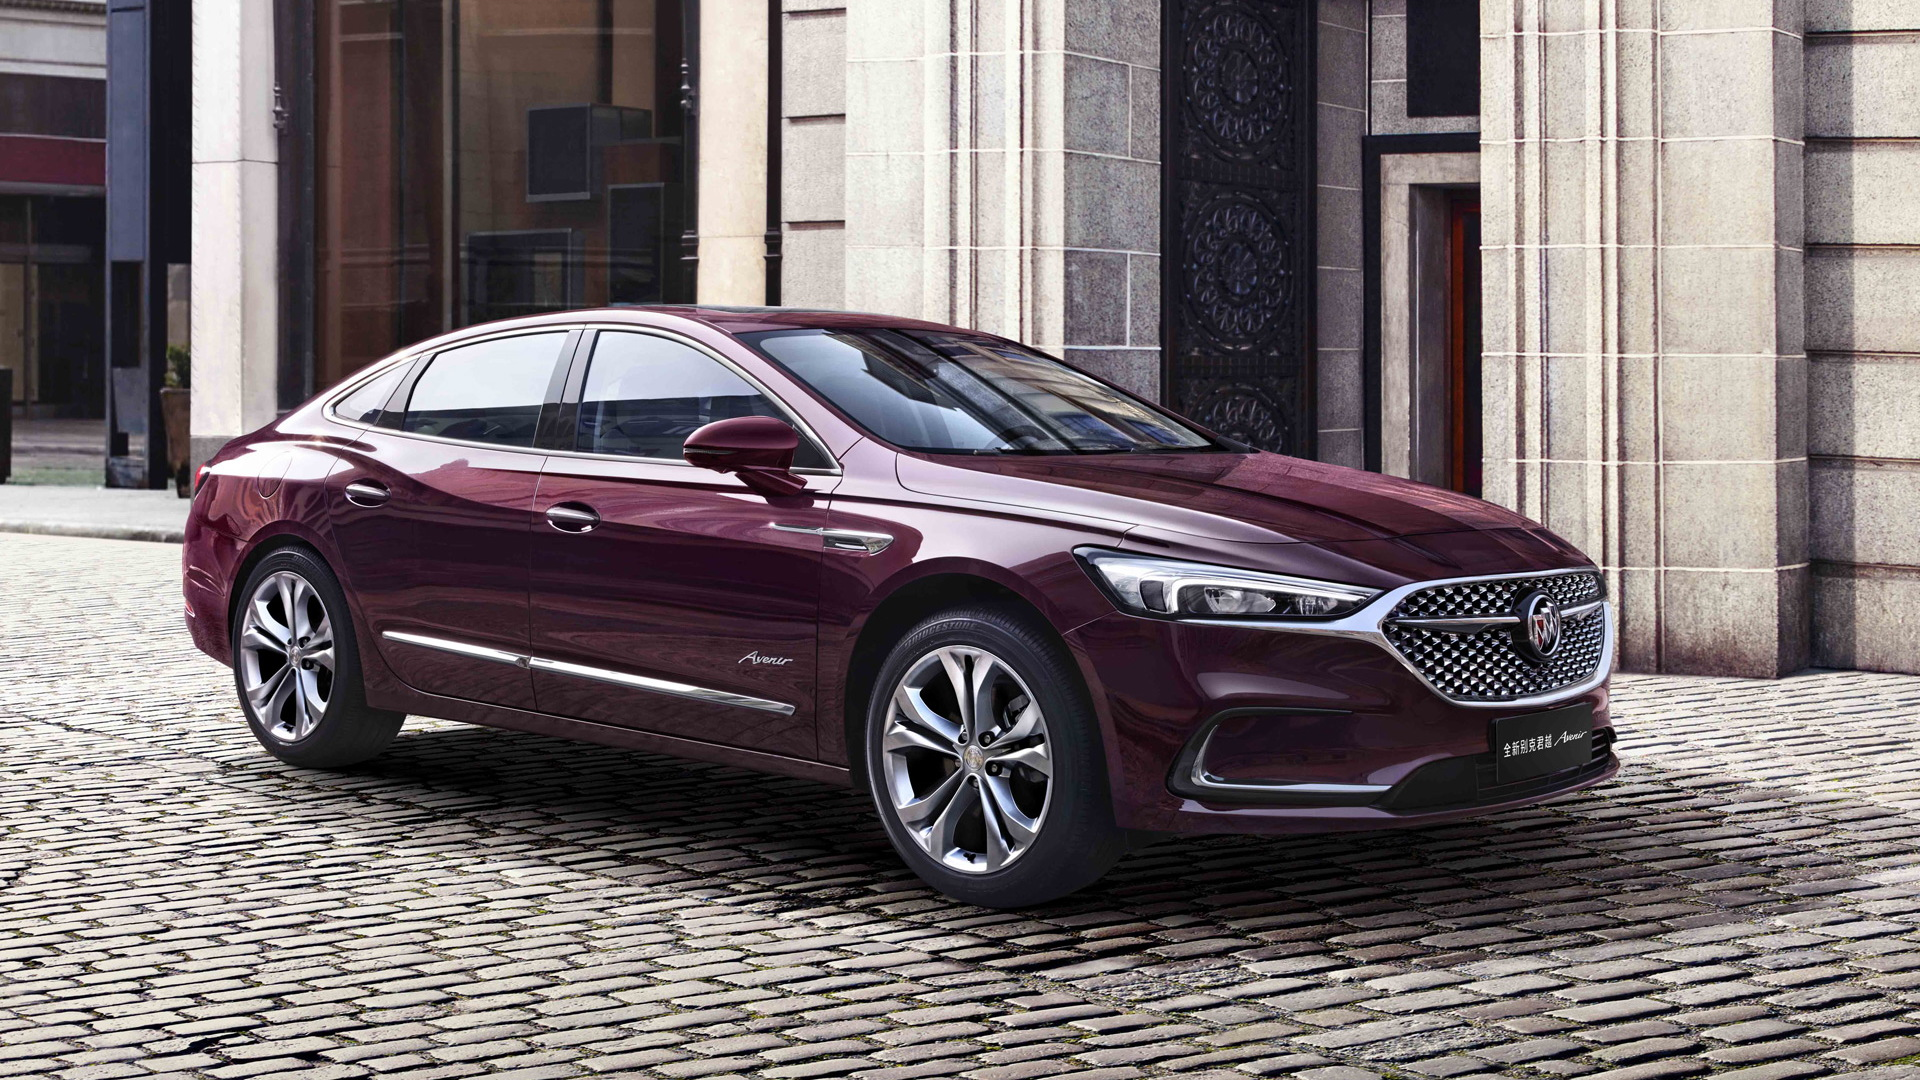 2020 Buick LaCrosse Specs and Review